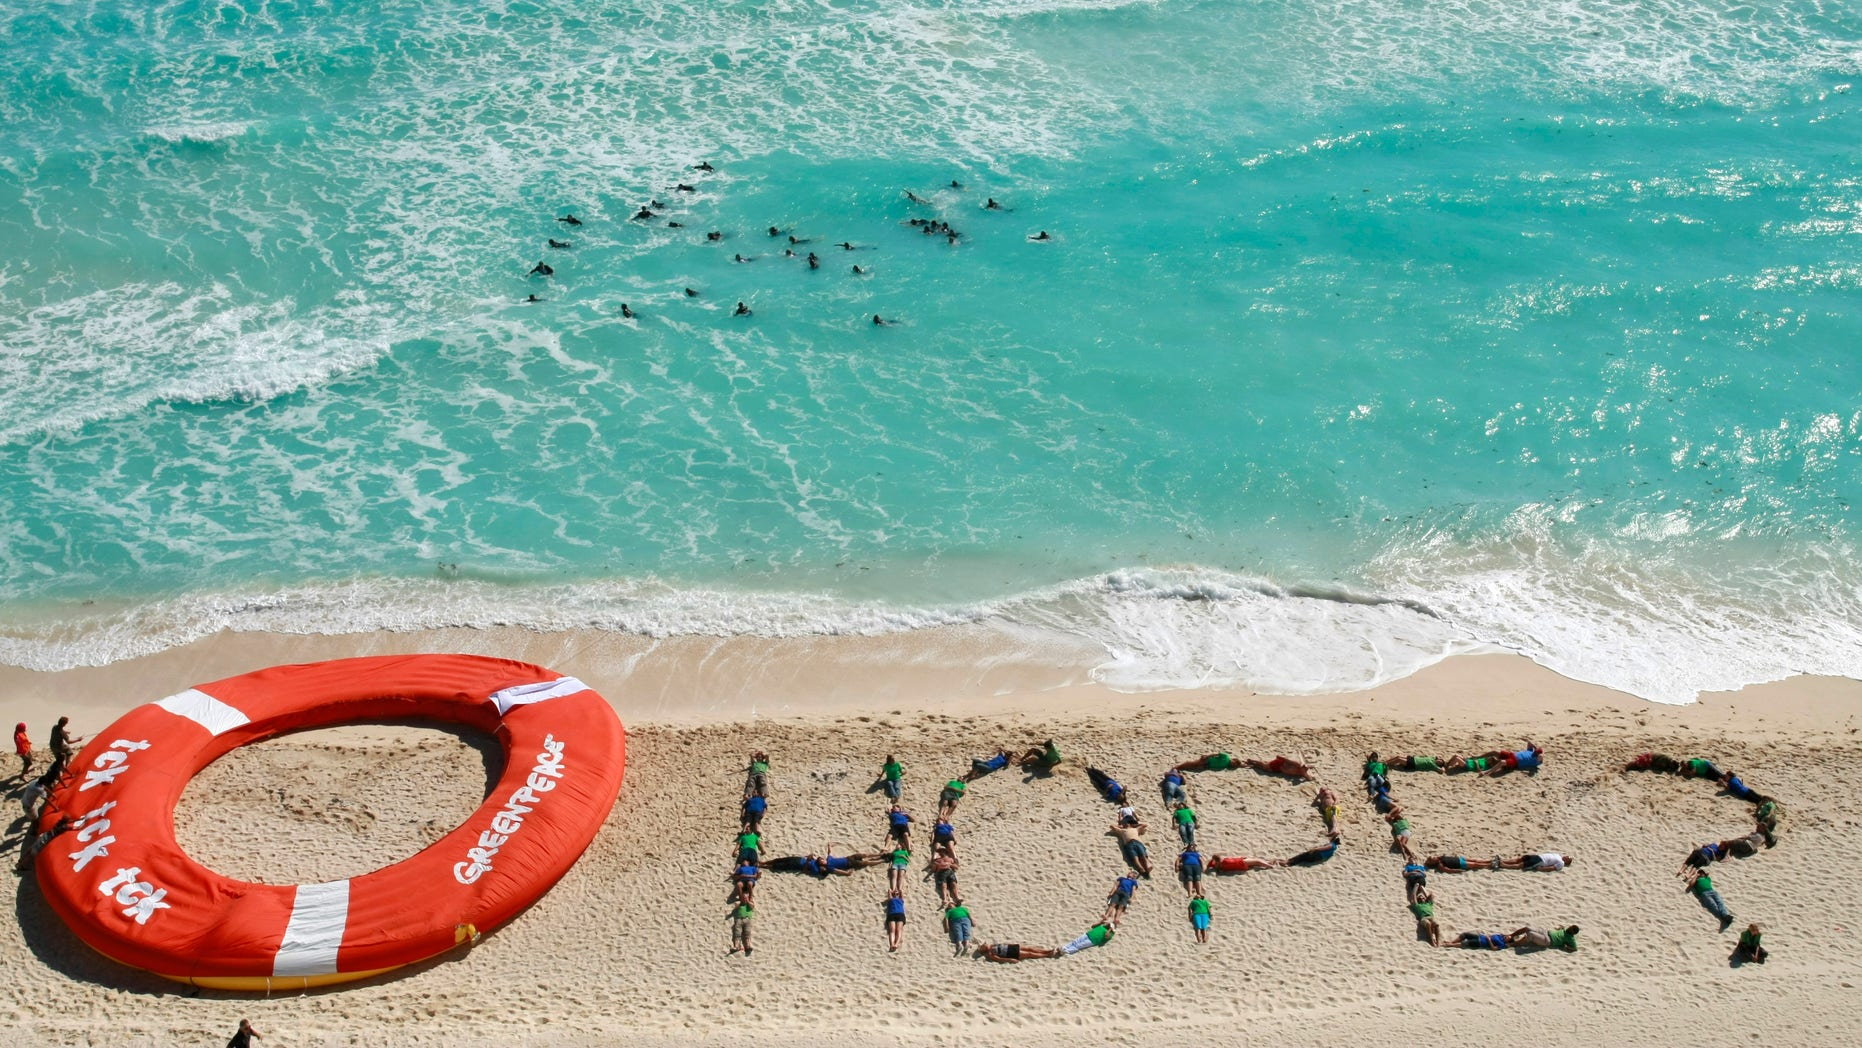 Dec. 10: Greenpeace activists form the word hope as a question with their bodies, next to a giant life saver, during a demonstration near the site of the United Nations Climate Change Conference in Cancun, Mexico.